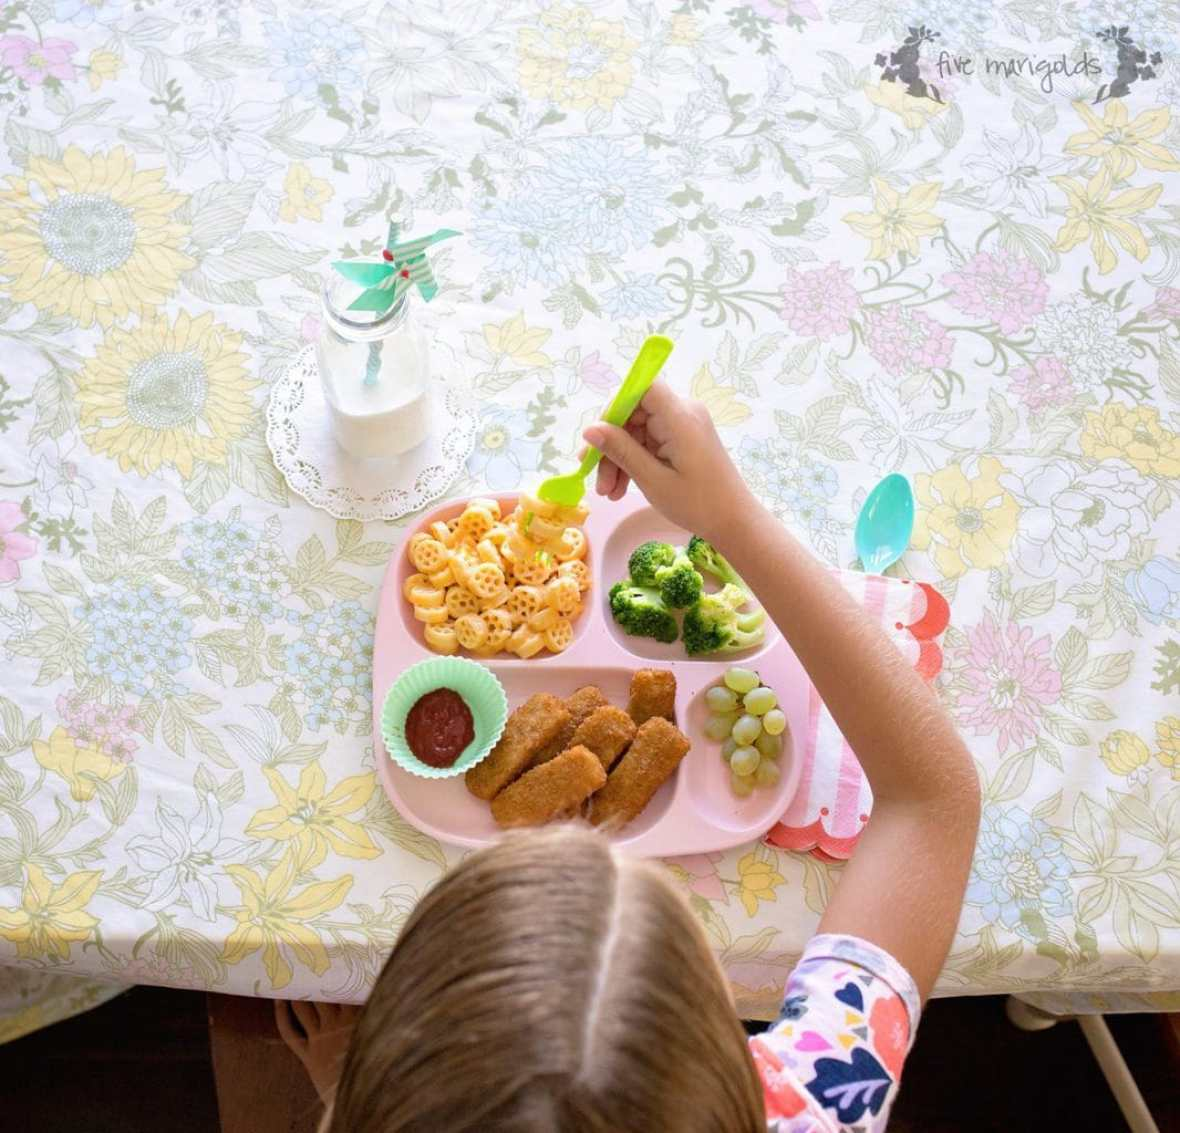 My go-to meal: Kidfresh Fun-tastic Fish Sticks and Kidfresh Wagon Wheels Mac + Cheese, served up with fresh fruit and veggies.